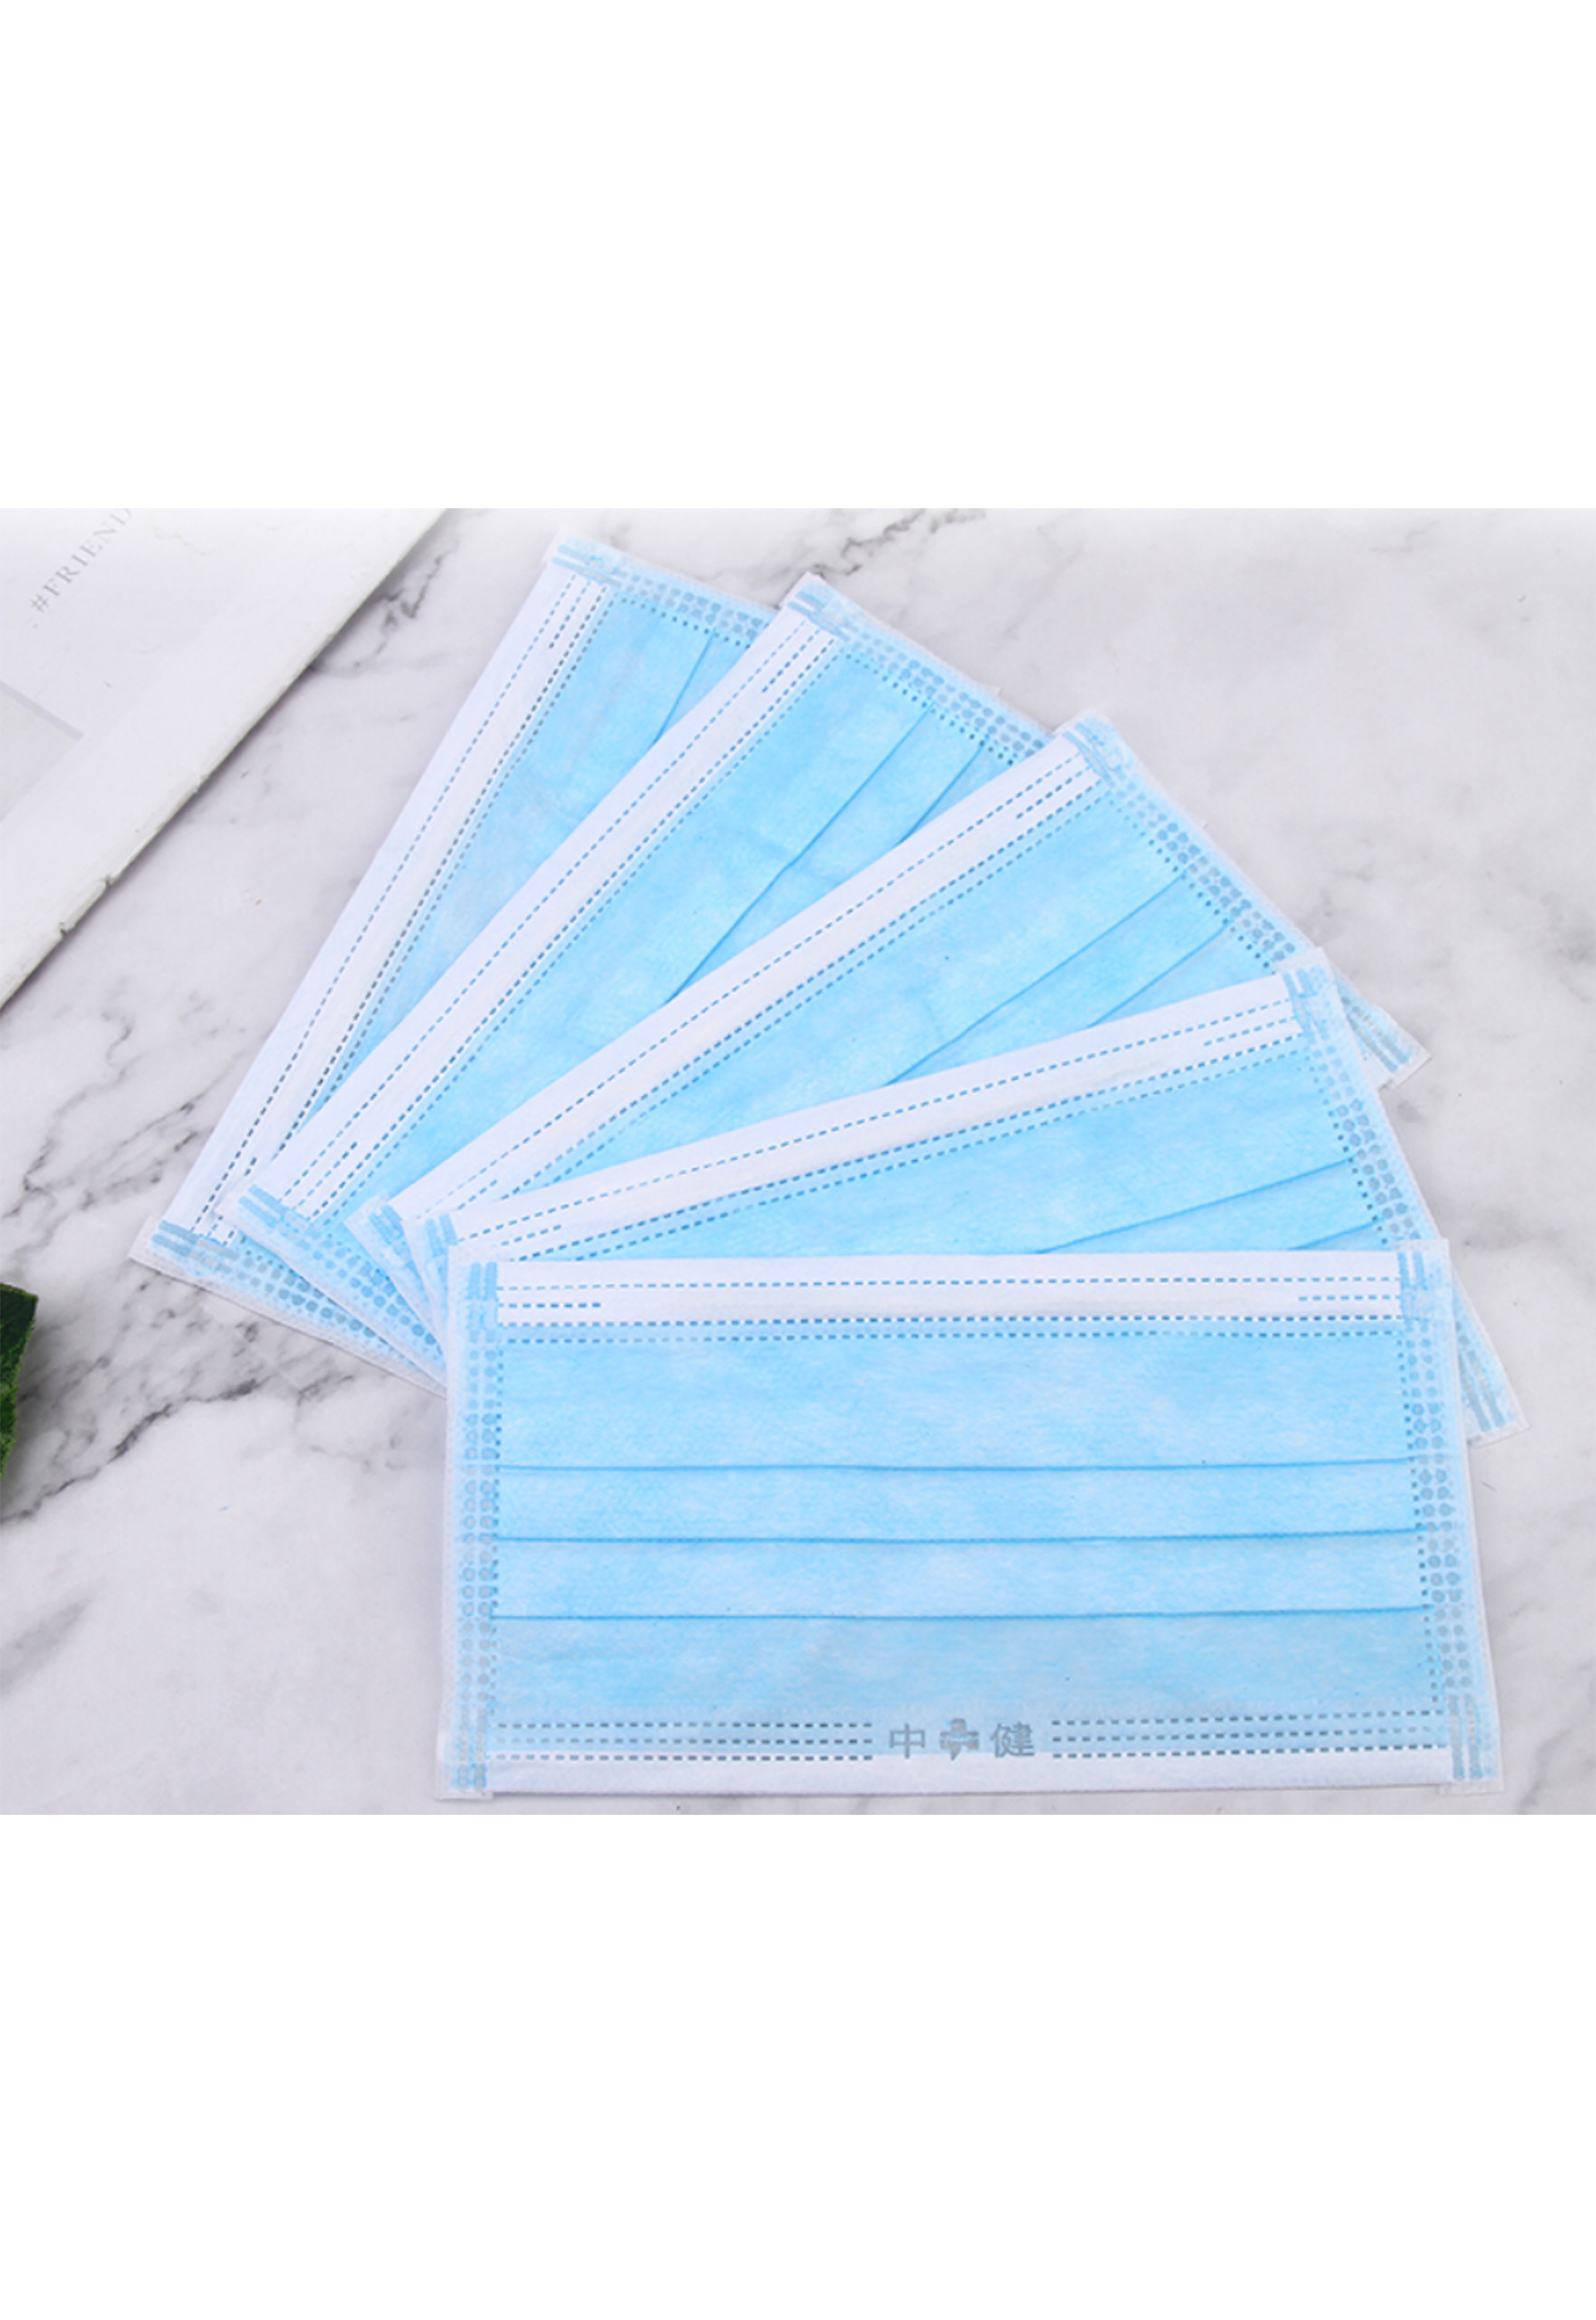 20 Pcs Face Masks